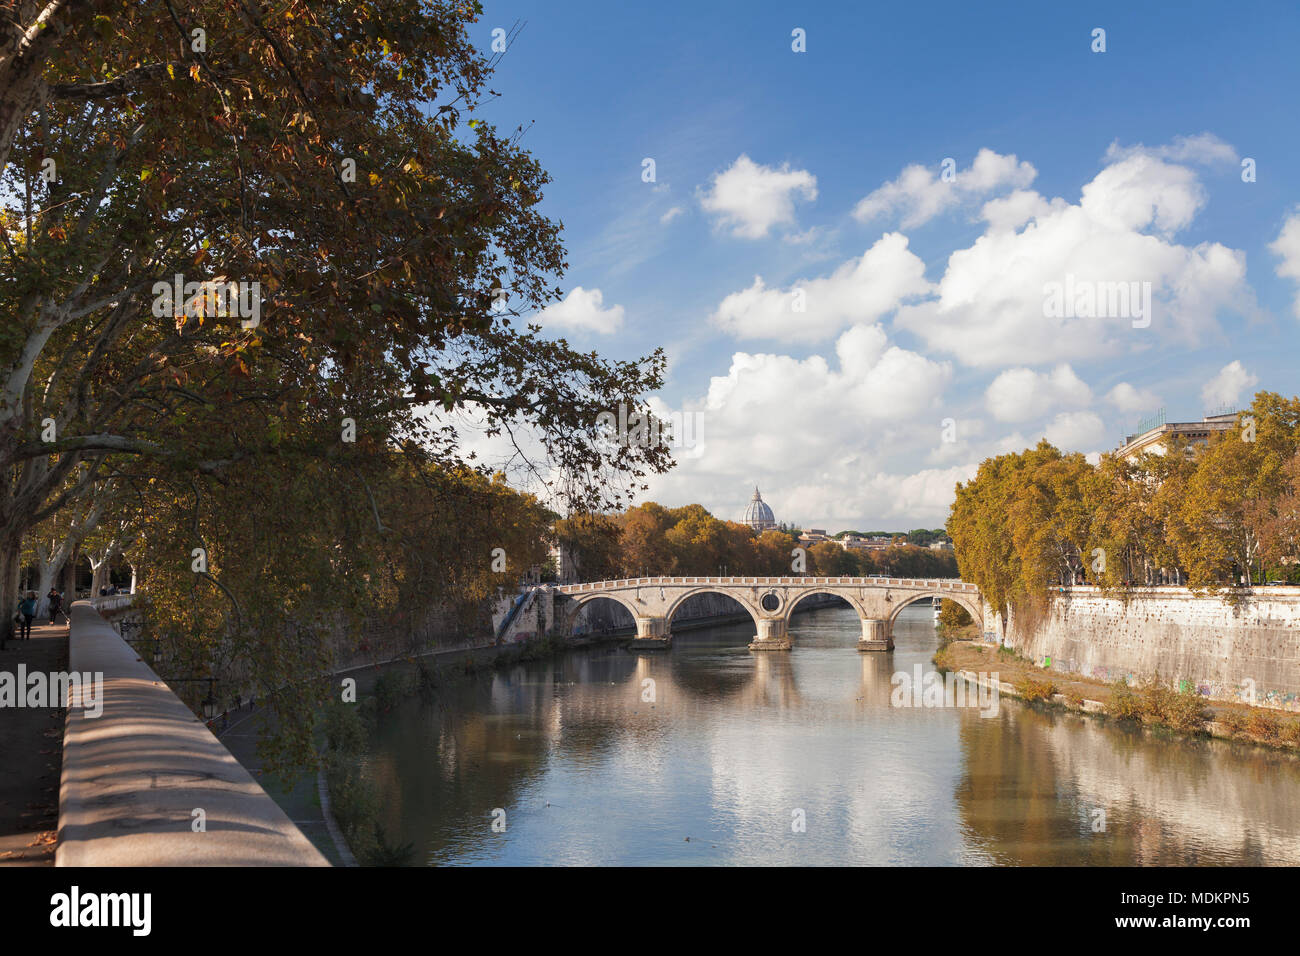 View over the Tiber to Ponte Garibaldi Bridge and St. Peter's Basilica, Rome, Lazio, Italy - Stock Image